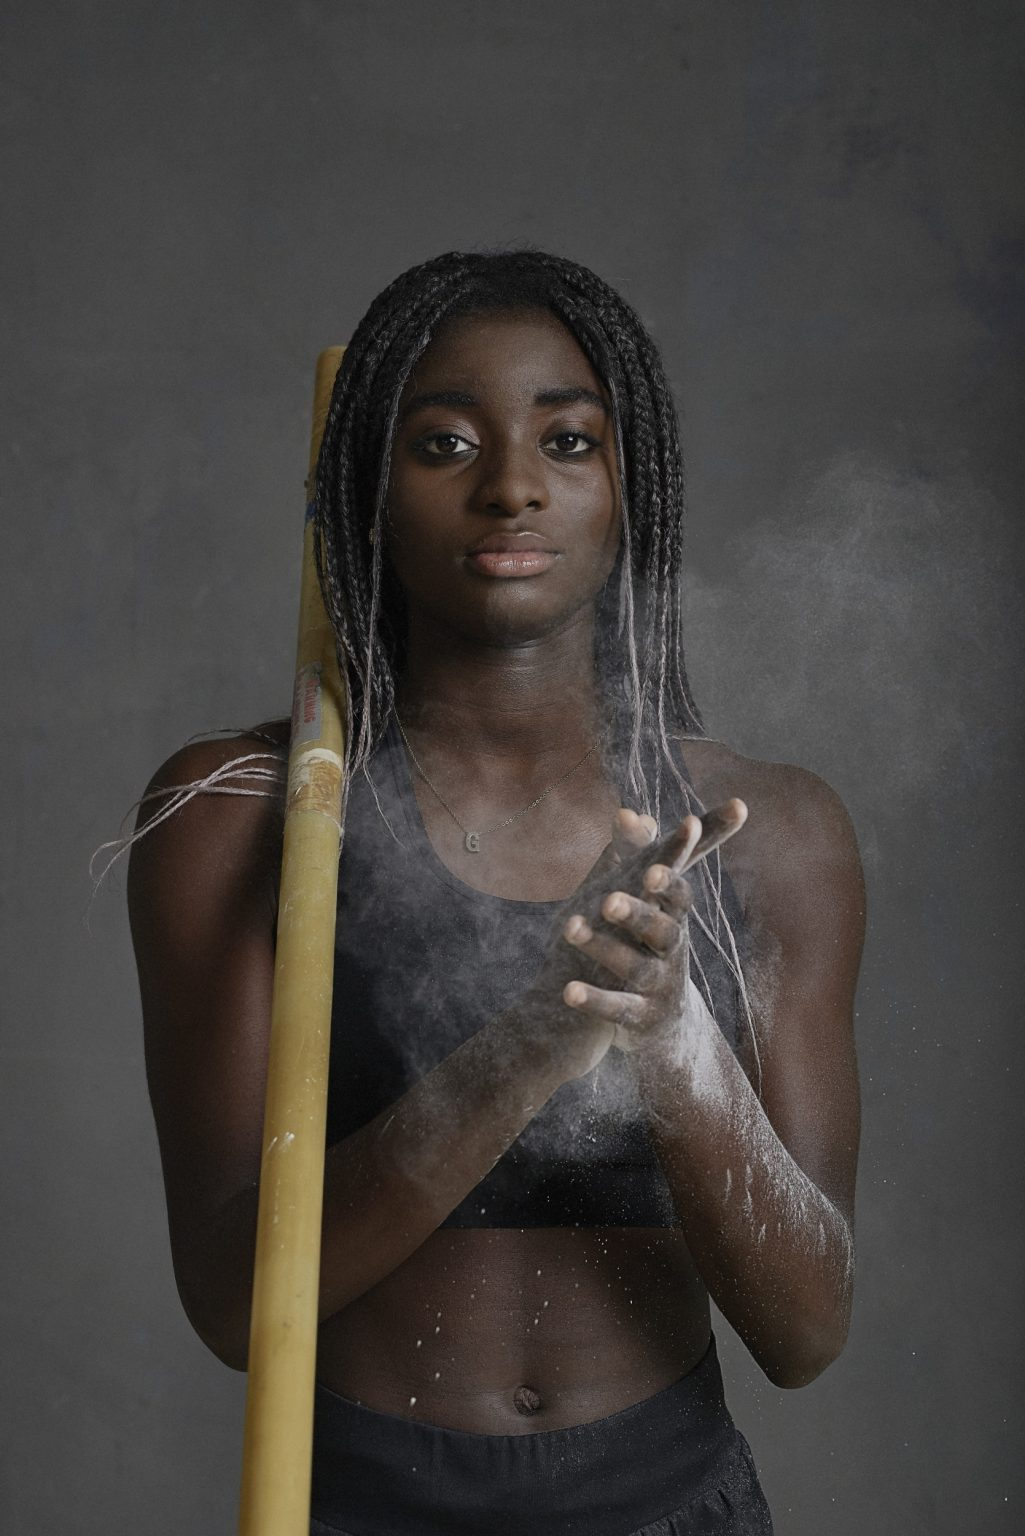 """""""My name is Great Nnachi and I was born on September 15, 2004 in Turin. My parents are Nigerians and they came to Italy 25 years ago. I've been practicintg athletic since I was 9 years old but I started with pole vault when I was 12. I found some difficulty: for example, when I achieved the Italian athletics record, it has not been validated as long as my coach managed to change the regulation. Now, I am standard bearer of the Republic thanks to president Mattarella. I would like to be able to attend the Olympics and compete for the country where I was born, Italy """"."""